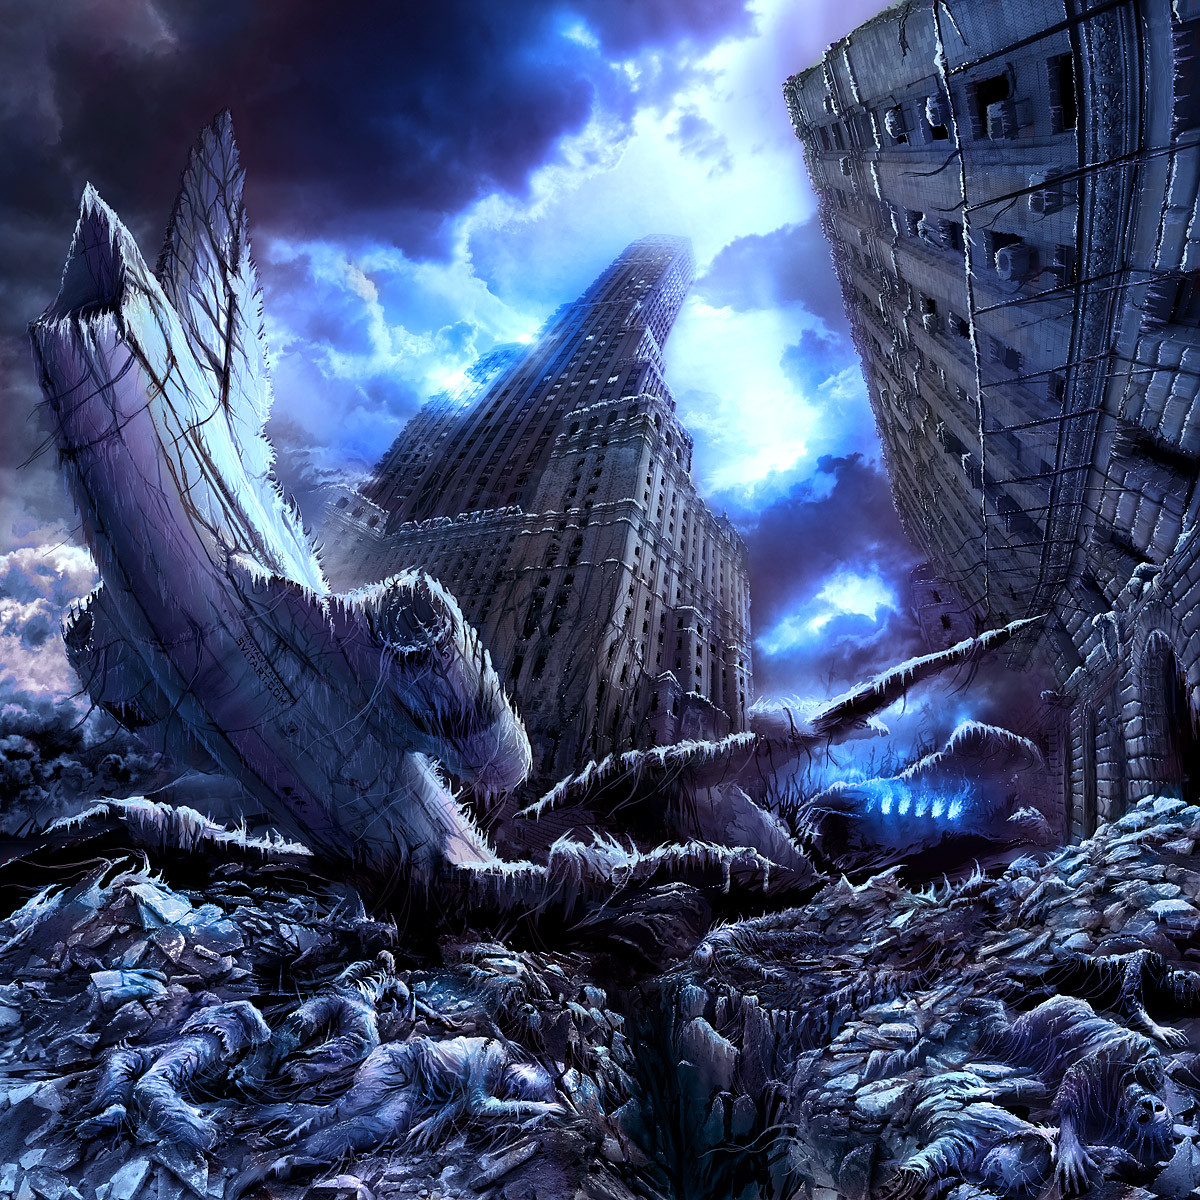 Catatonic Atrocity by alexiuss